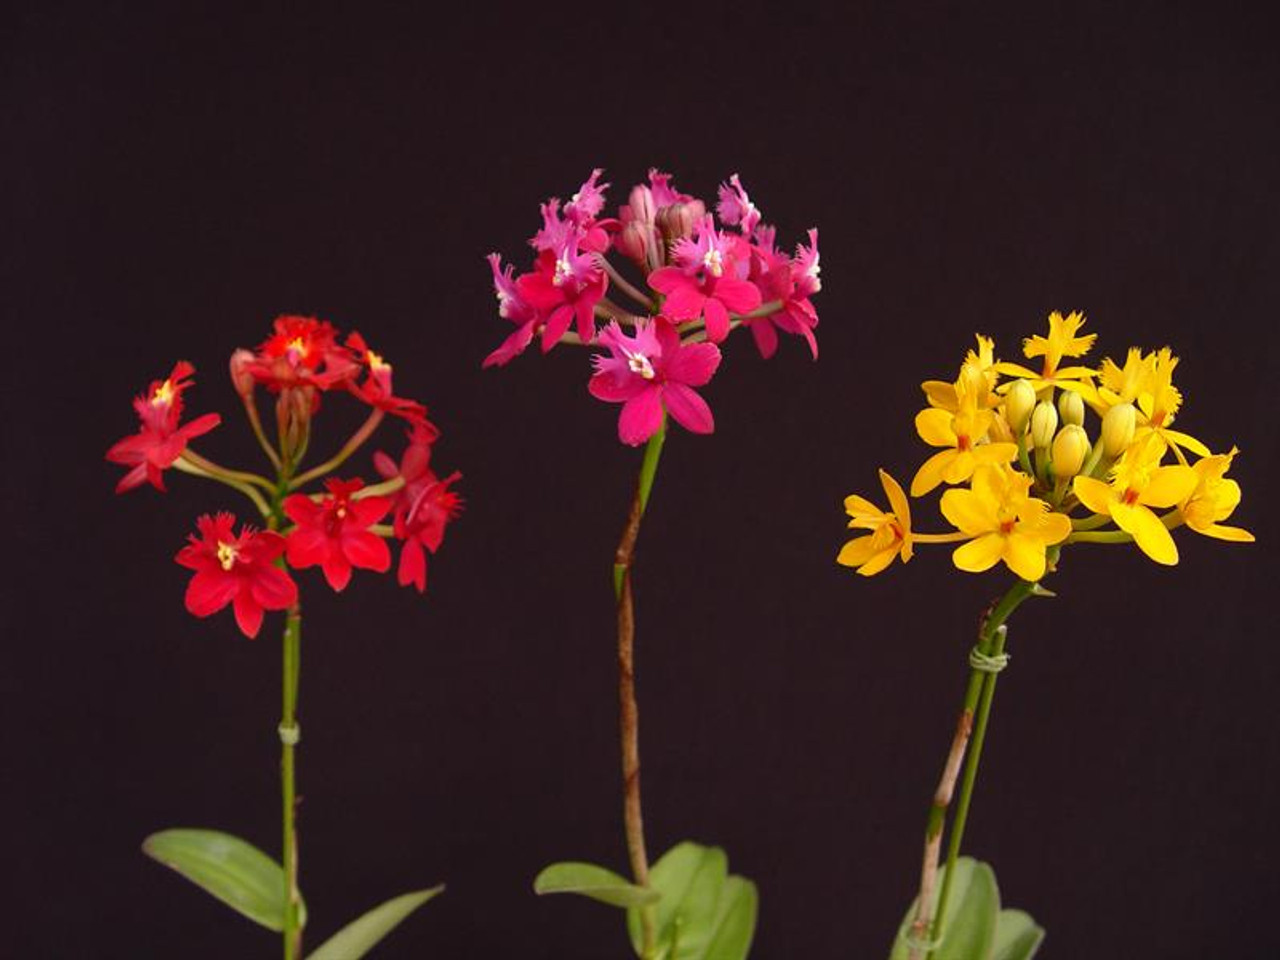 Epidendrum Hybrids - various colors